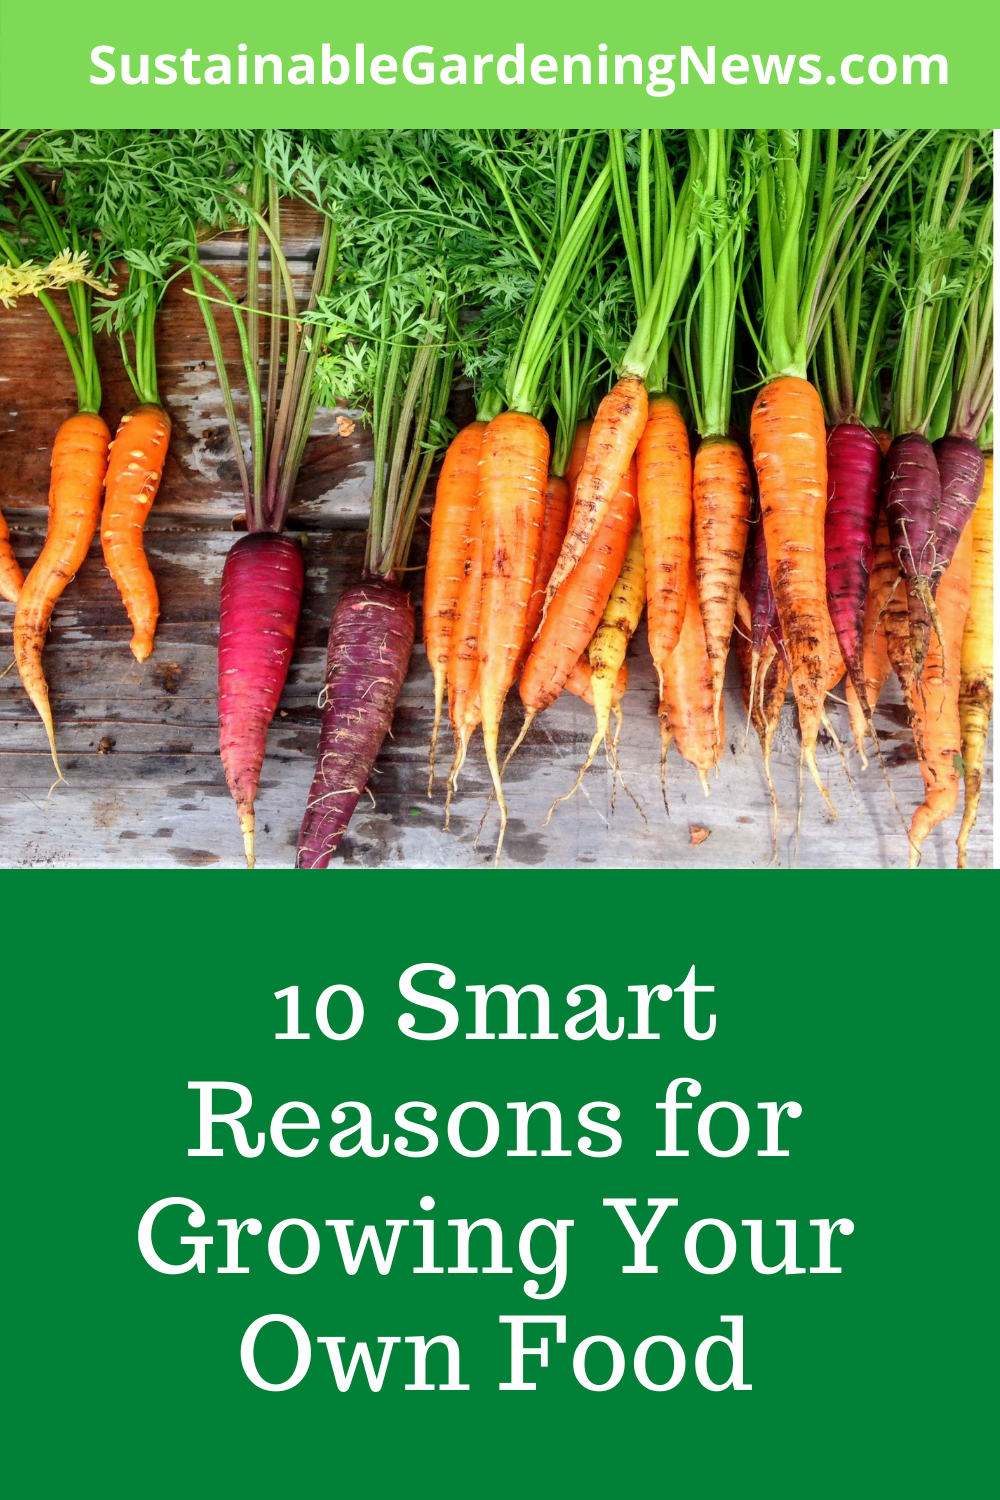 10 Smart Reasons for Growing Your Own Food